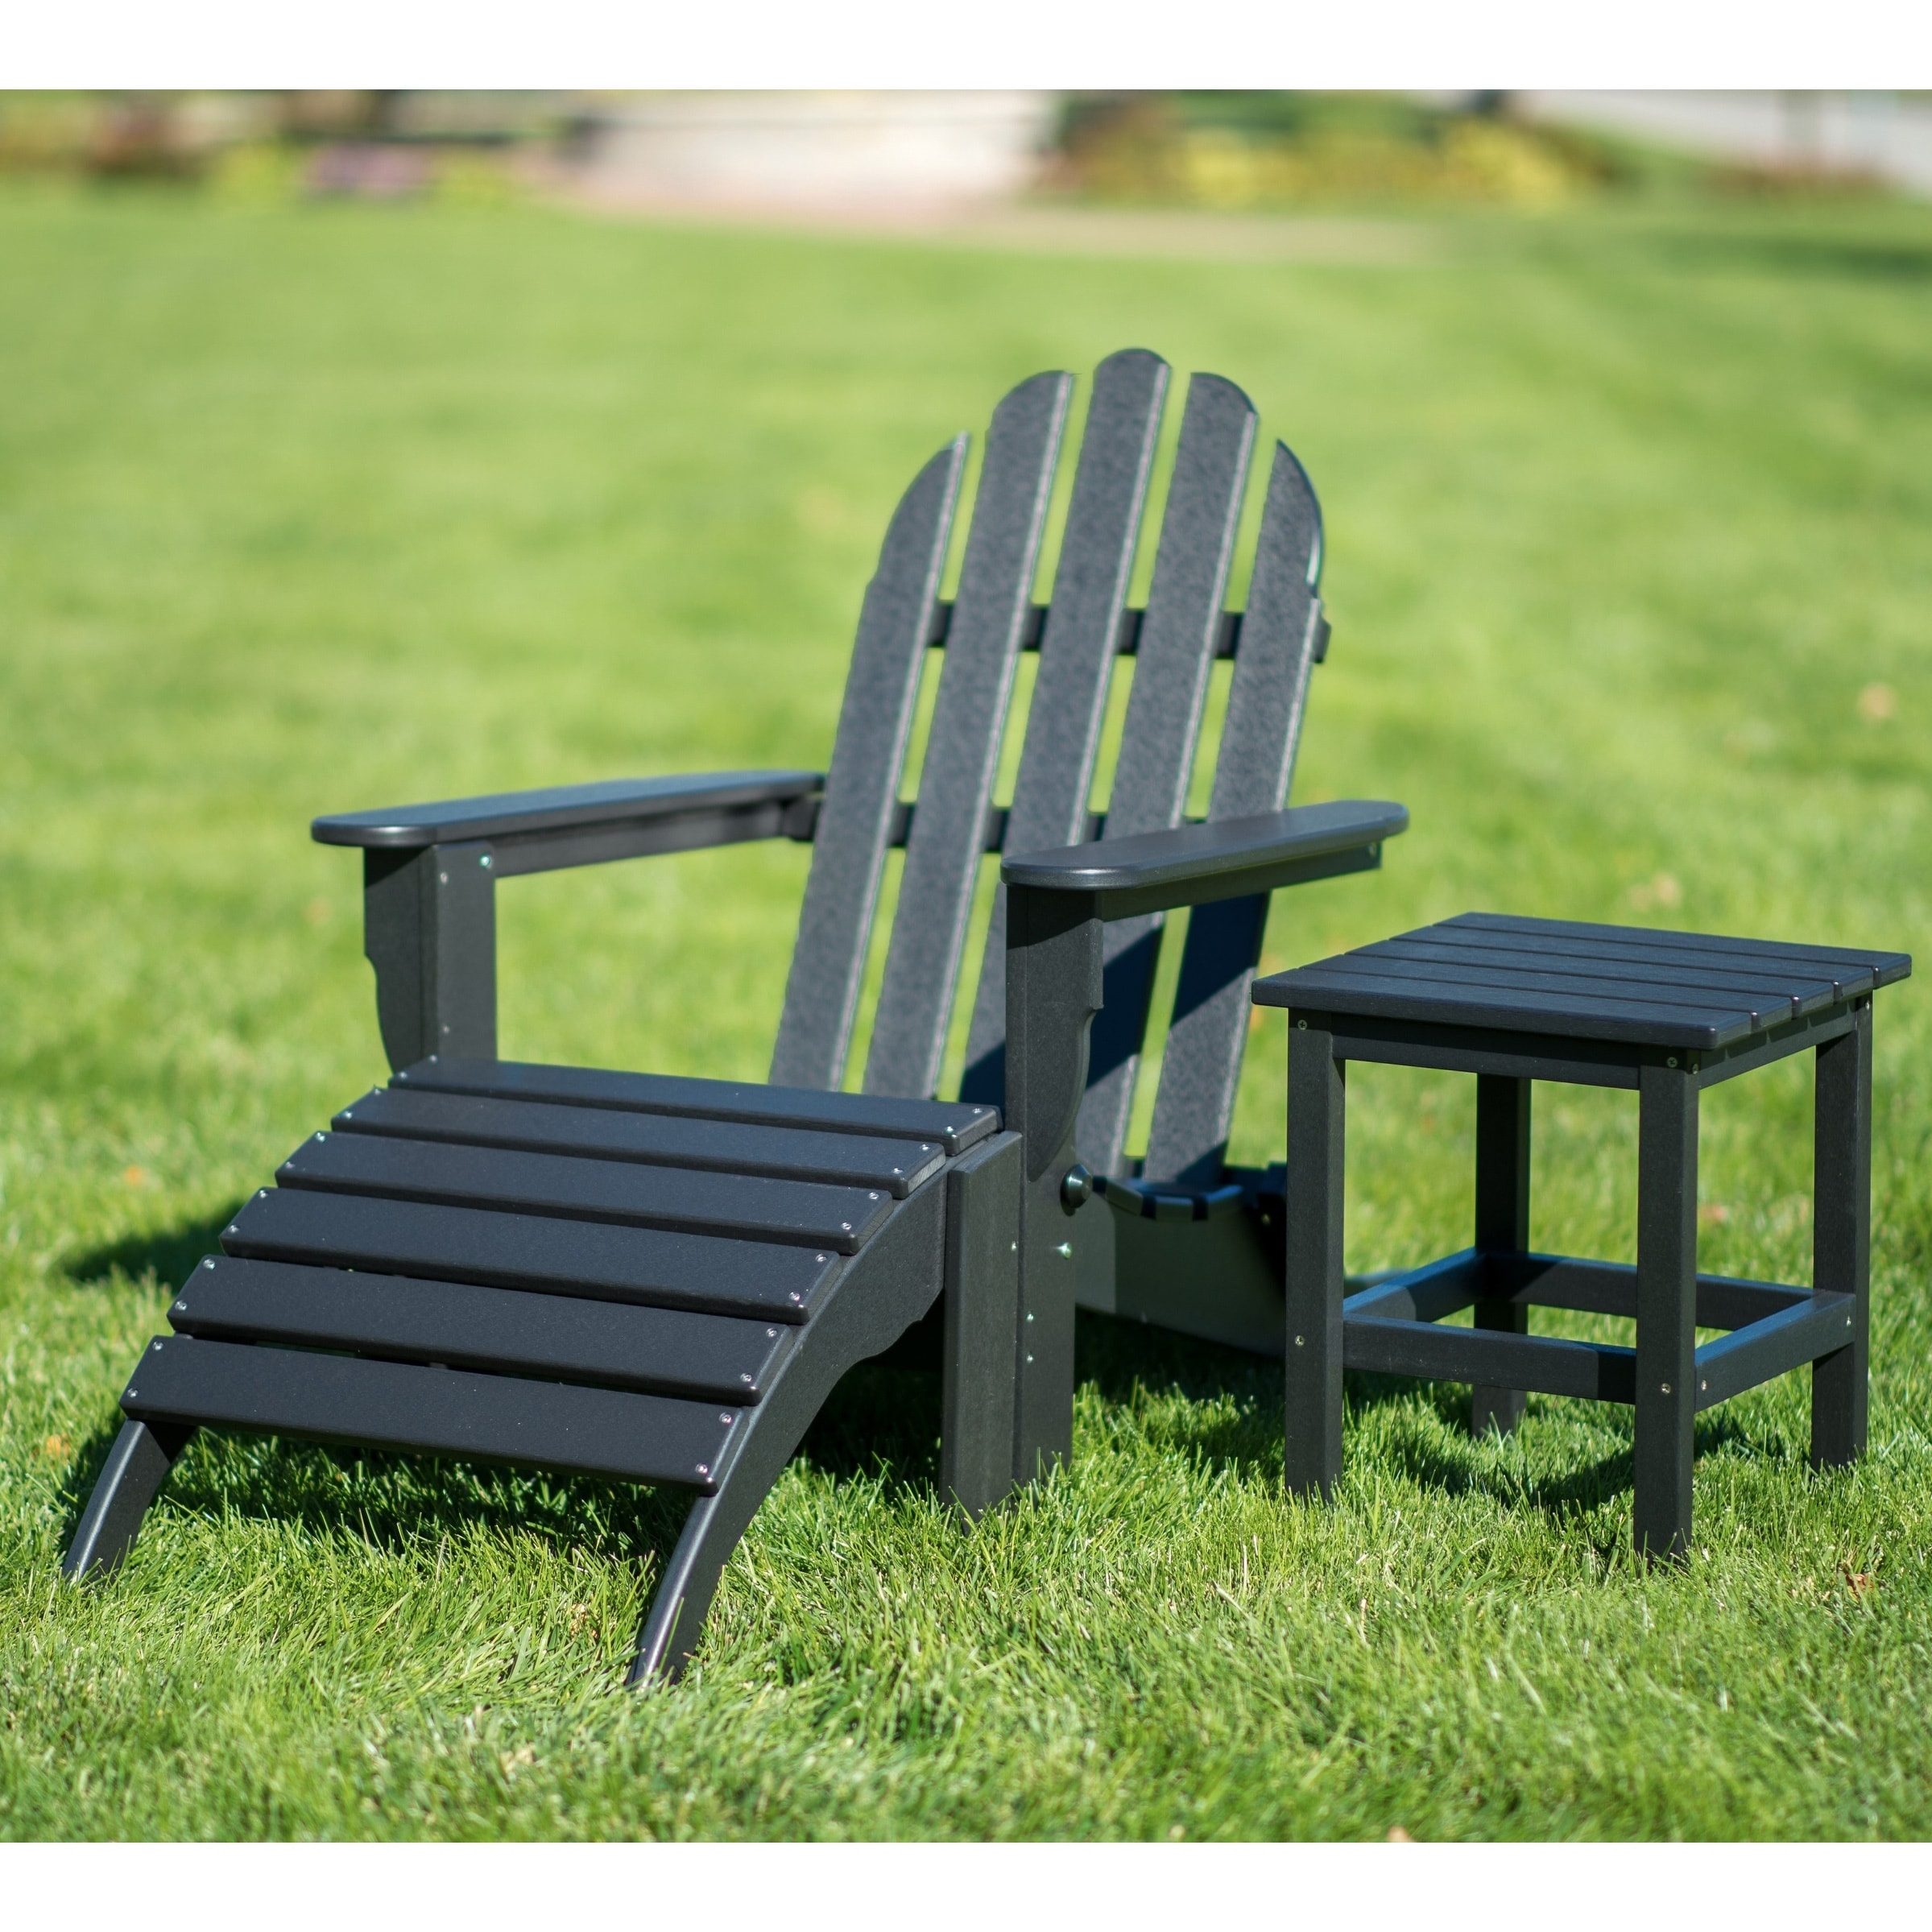 Shop For Nelson 3 Piece Folding Adirondack Chair Ottoman And Side Table Set By Havenside Home Get Free Delivery On Everything At Overstock Your Online Garden Patio Shop Get 5 In Rewards With Club O 20019668